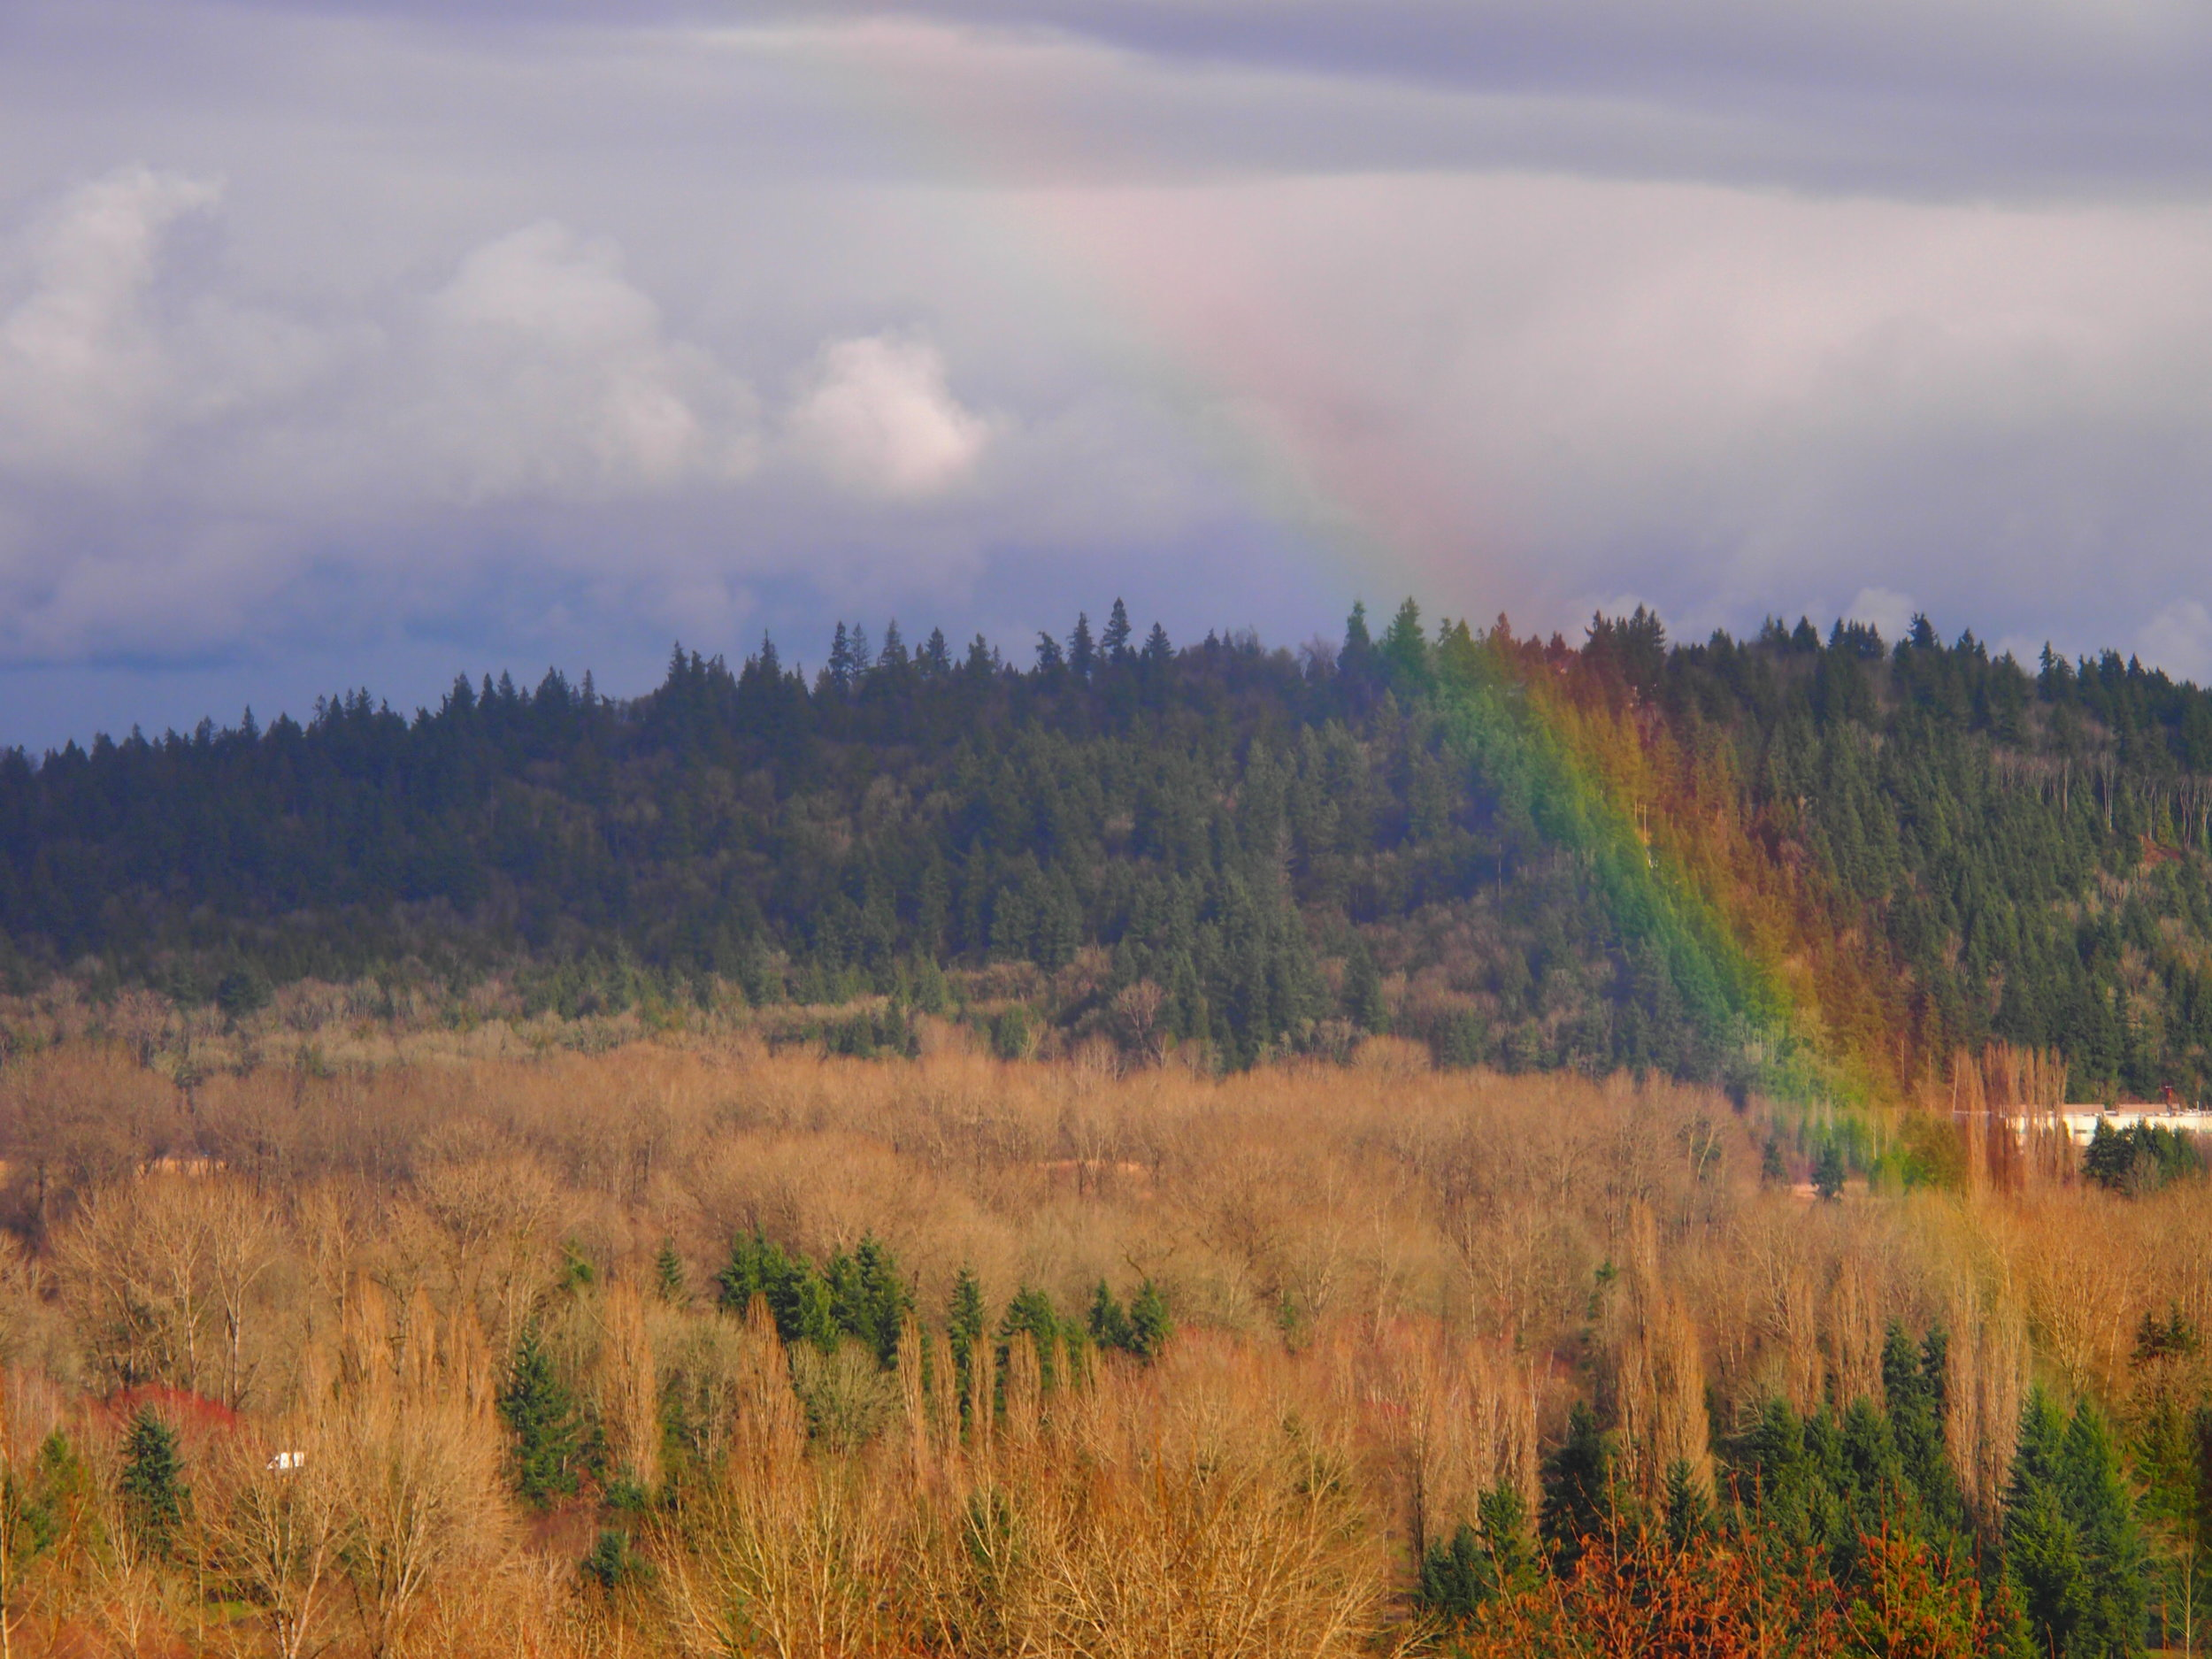 Rainbows can often be spotted during Seattle sunbreaks